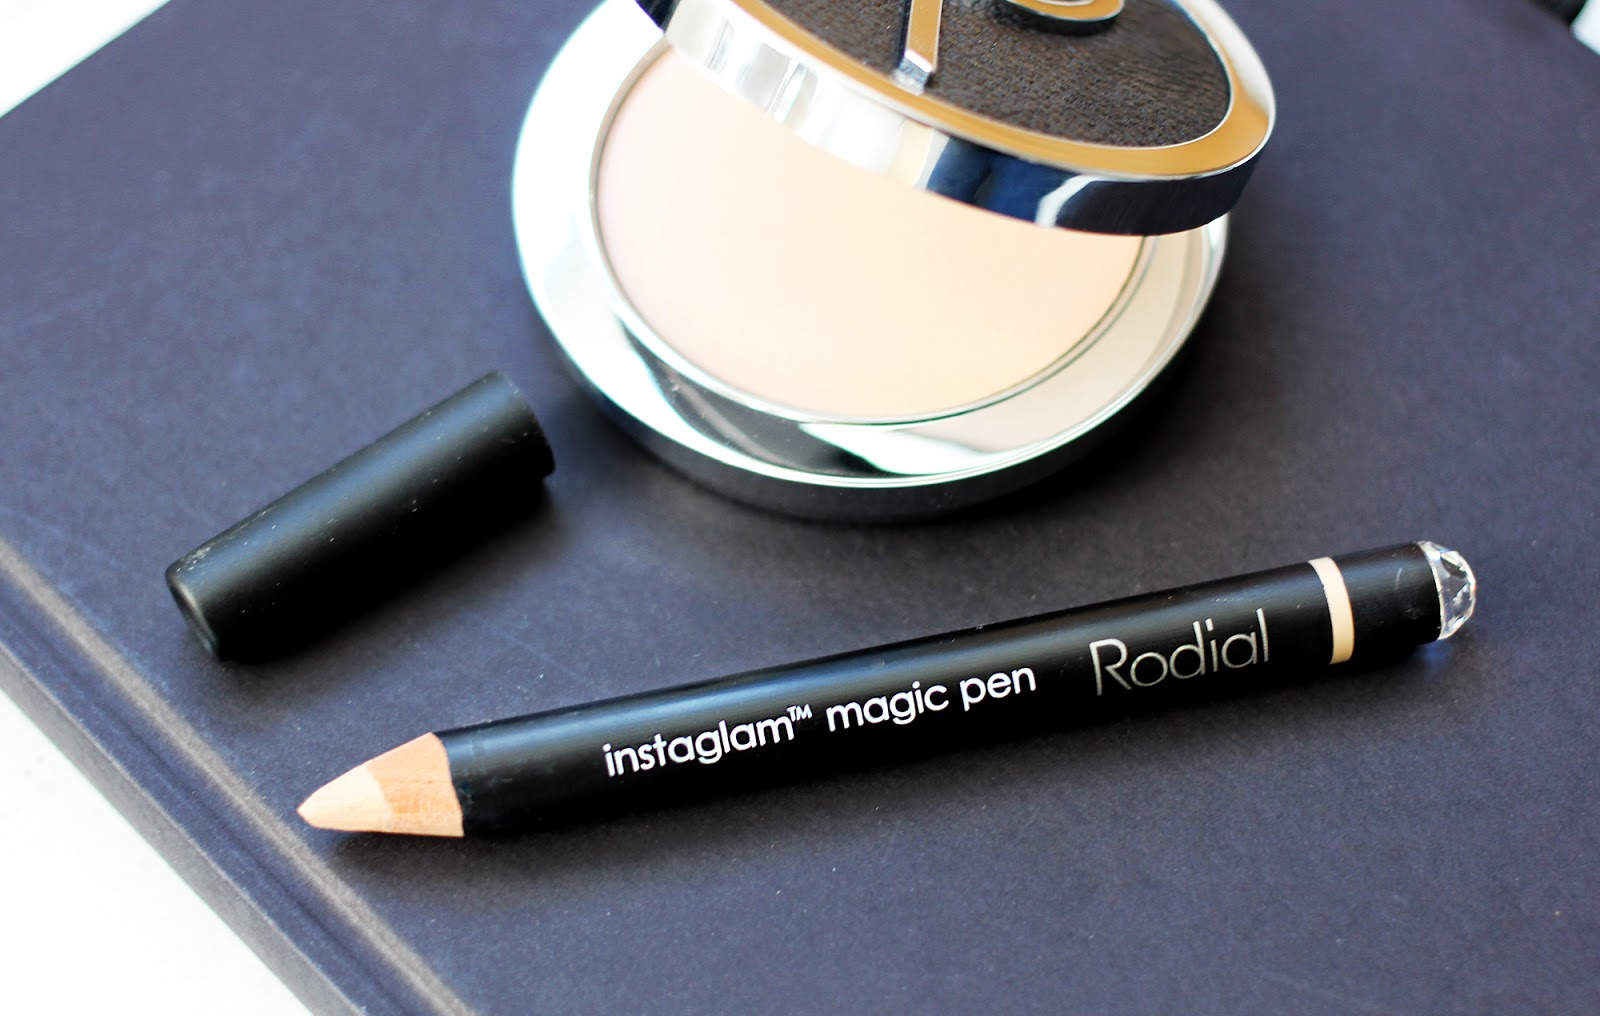 A beauty blogger reviews a selection of Rodial Make-up